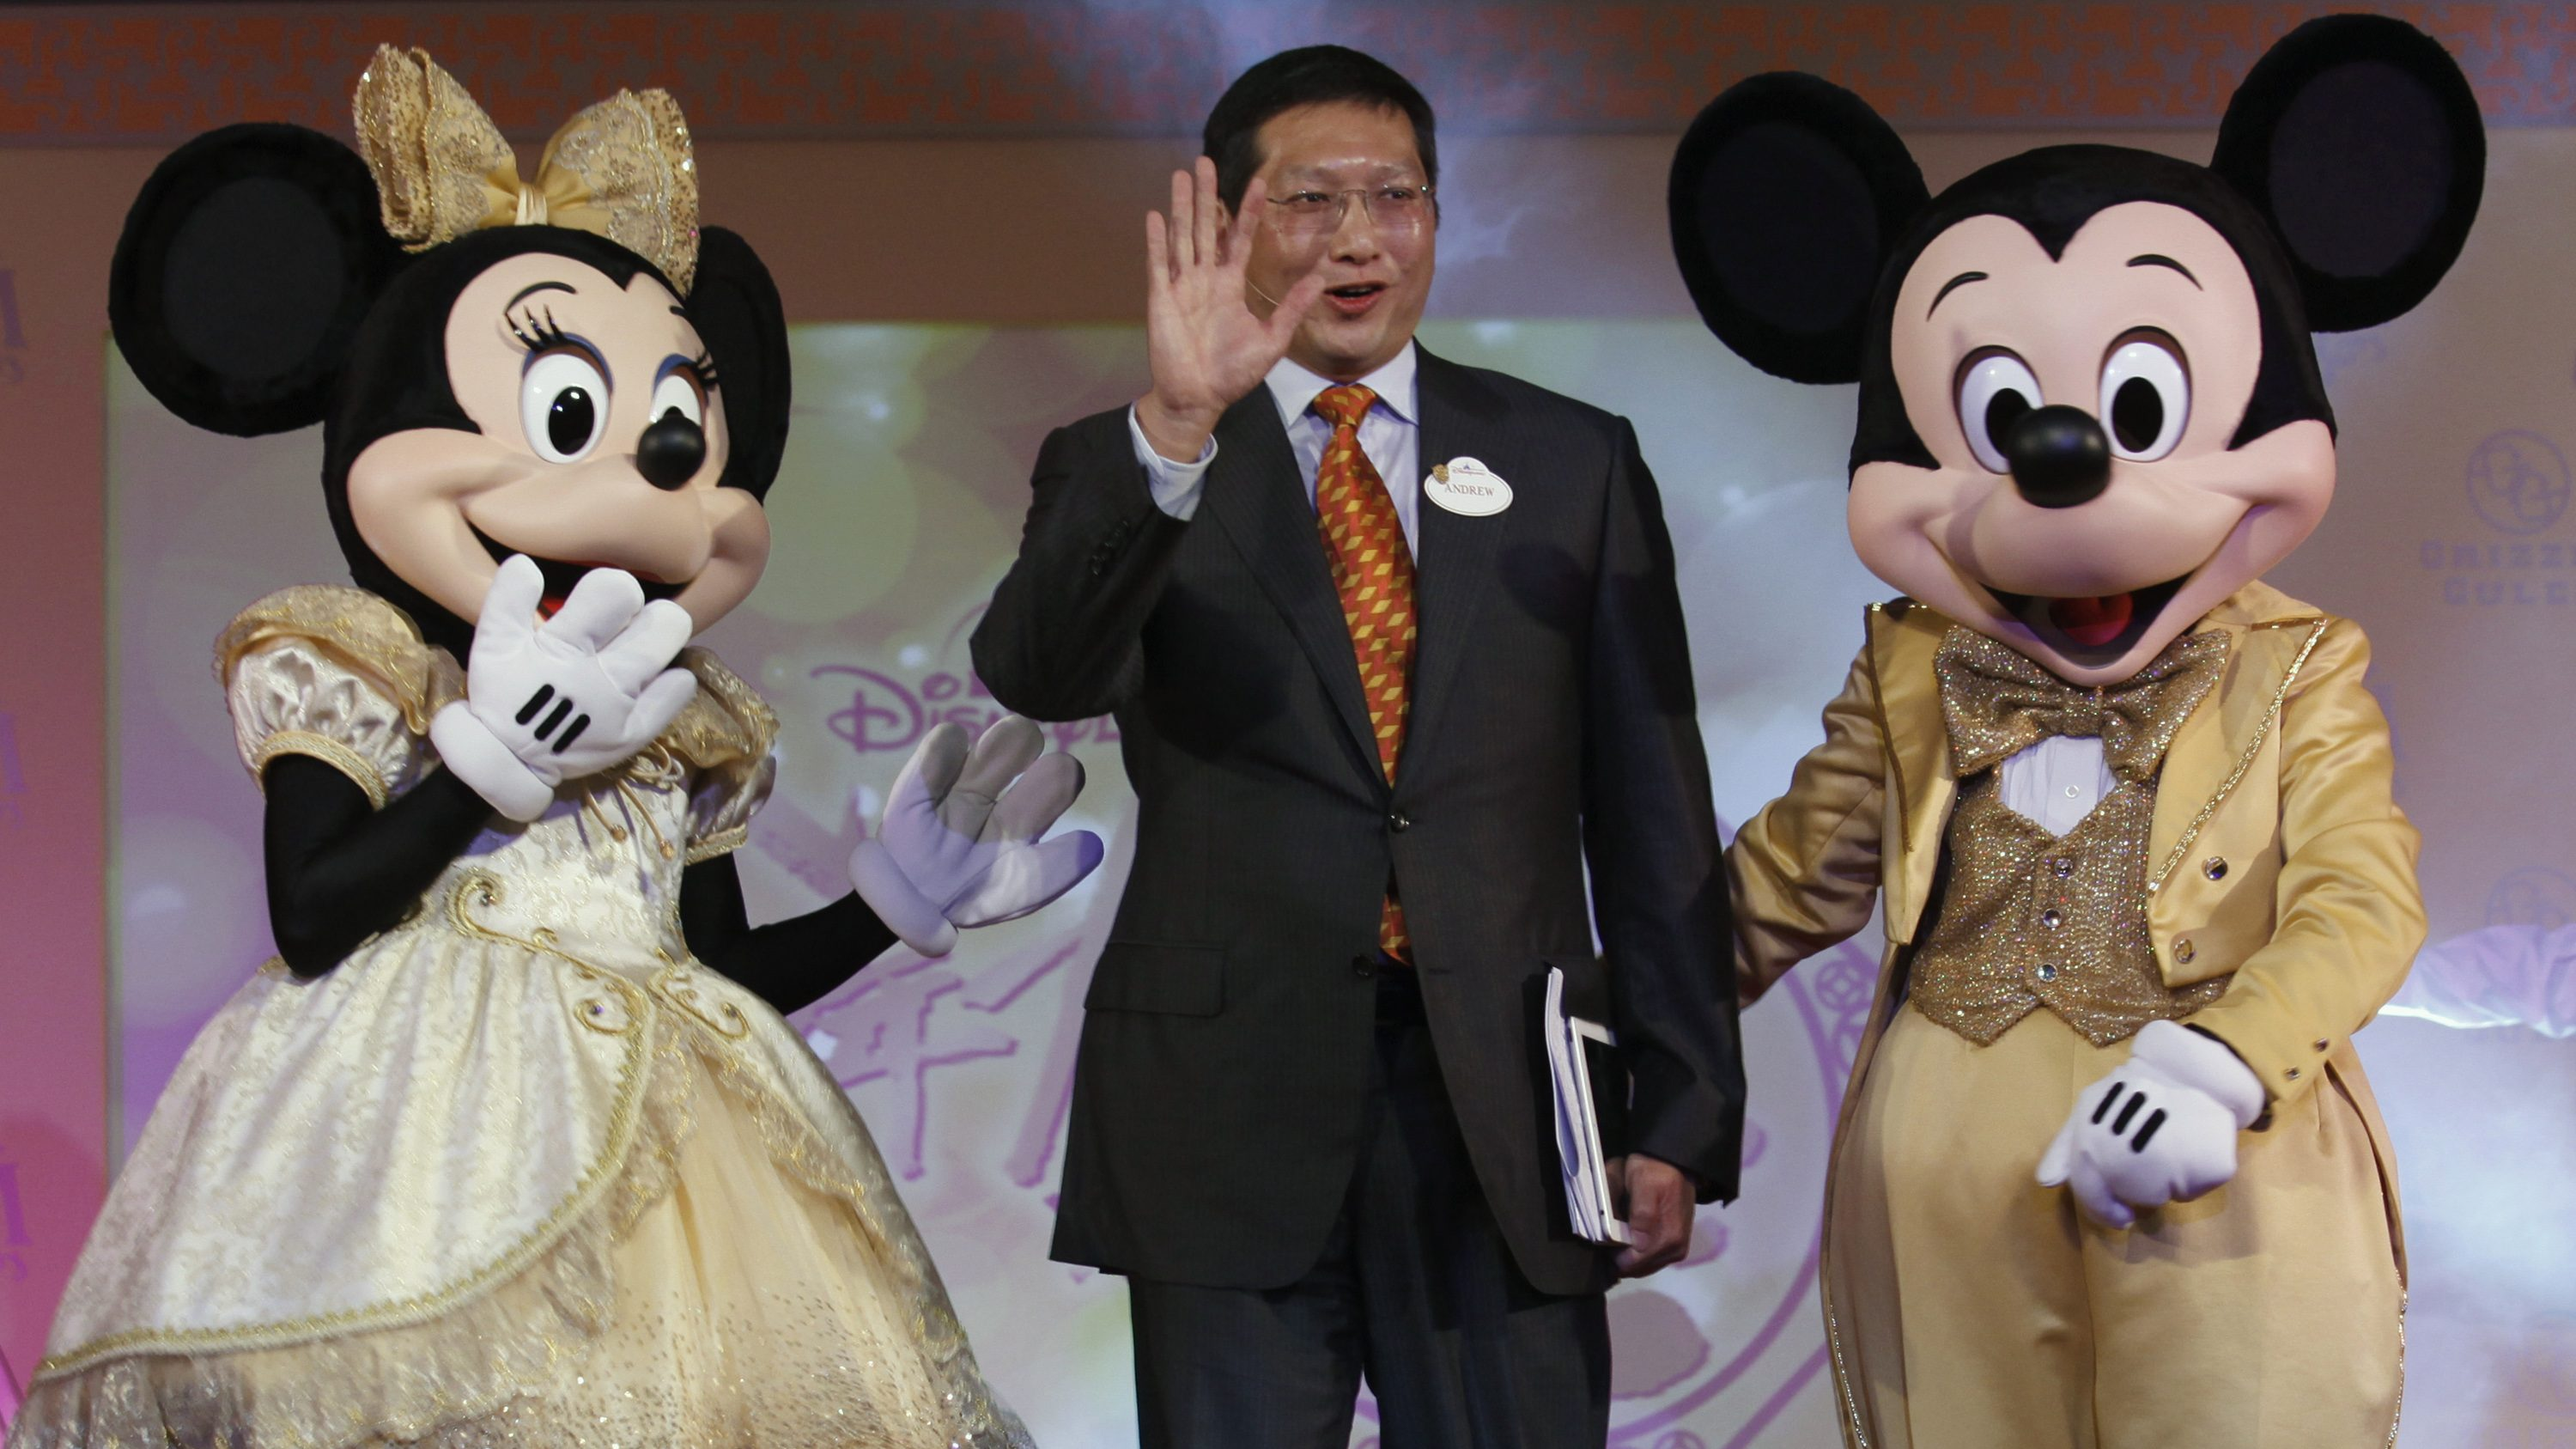 Hong Kong Disneyland Managing Director Andrew Kam (C) attends a news conference in Hong Kong February 18, 2013. Hong Kong Disneyland on Monday reported a net profit of HK$109 million (13.97 million) for the financial year that ended on September 29, 2012, the first annual profit since the resort opened in September 2005.